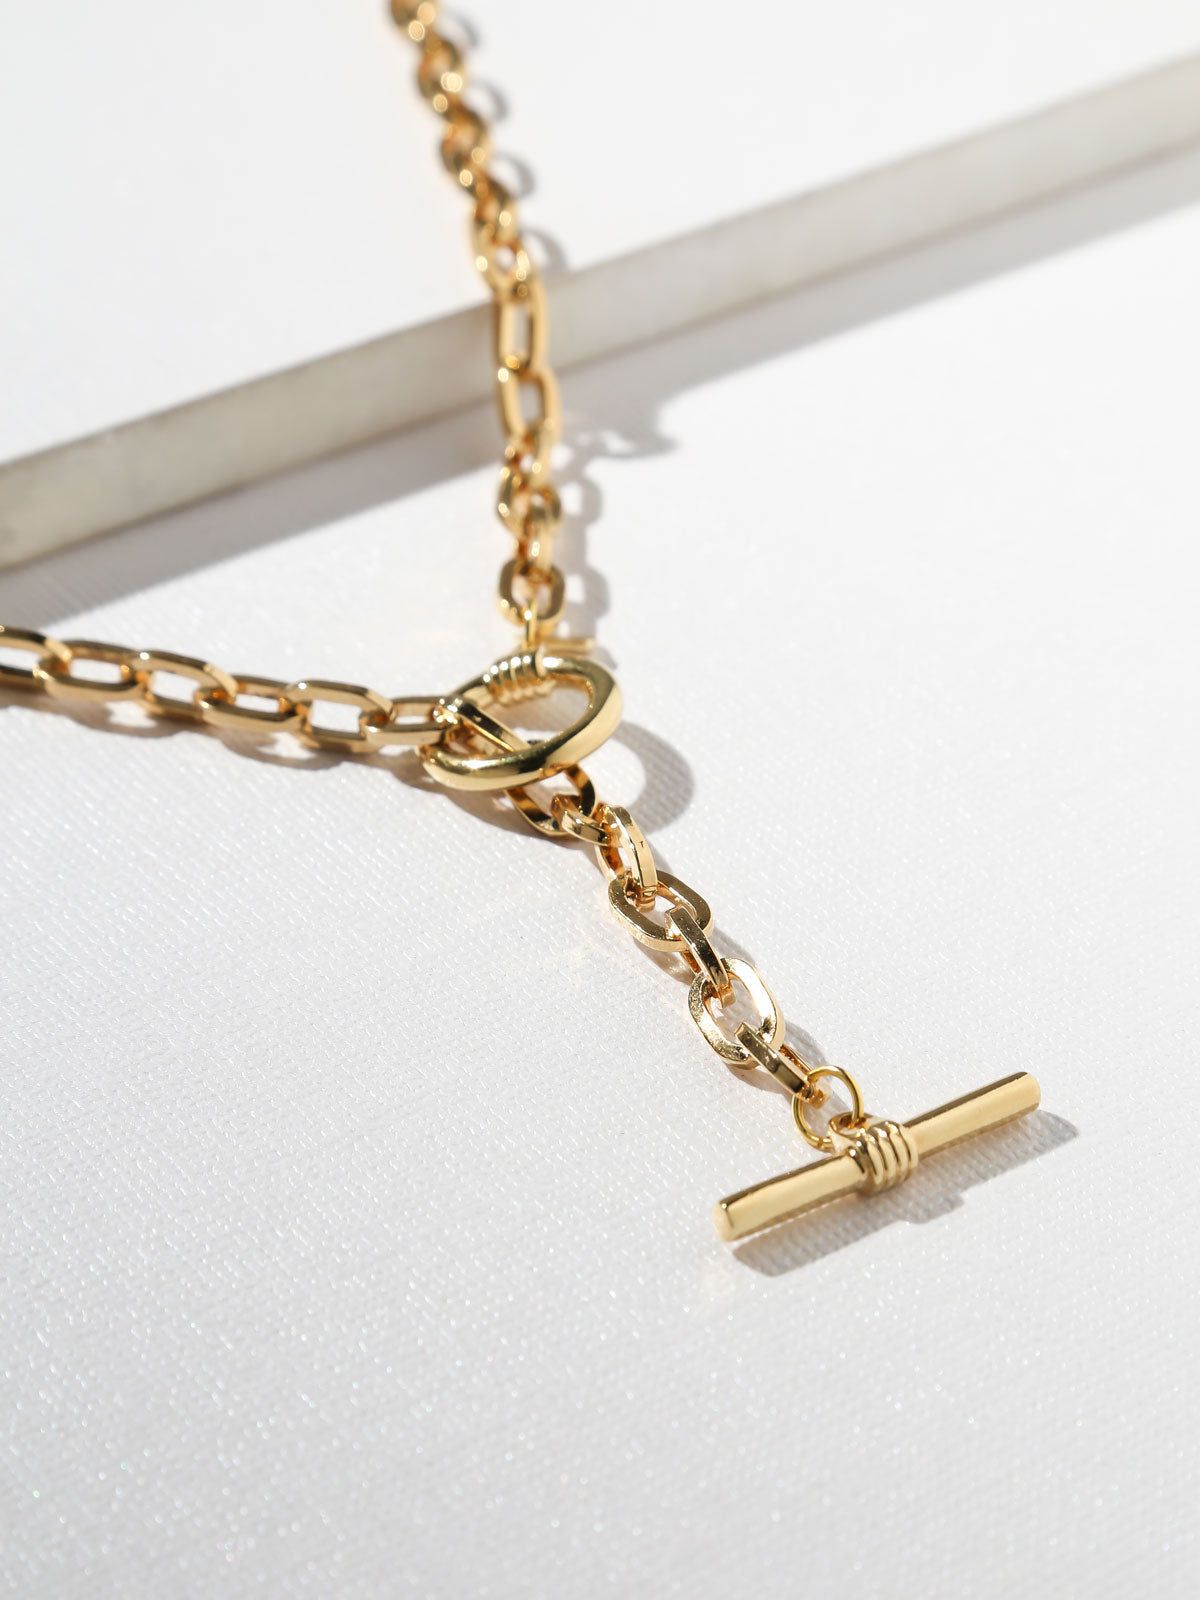 The Eternal Toggle Chain Necklace